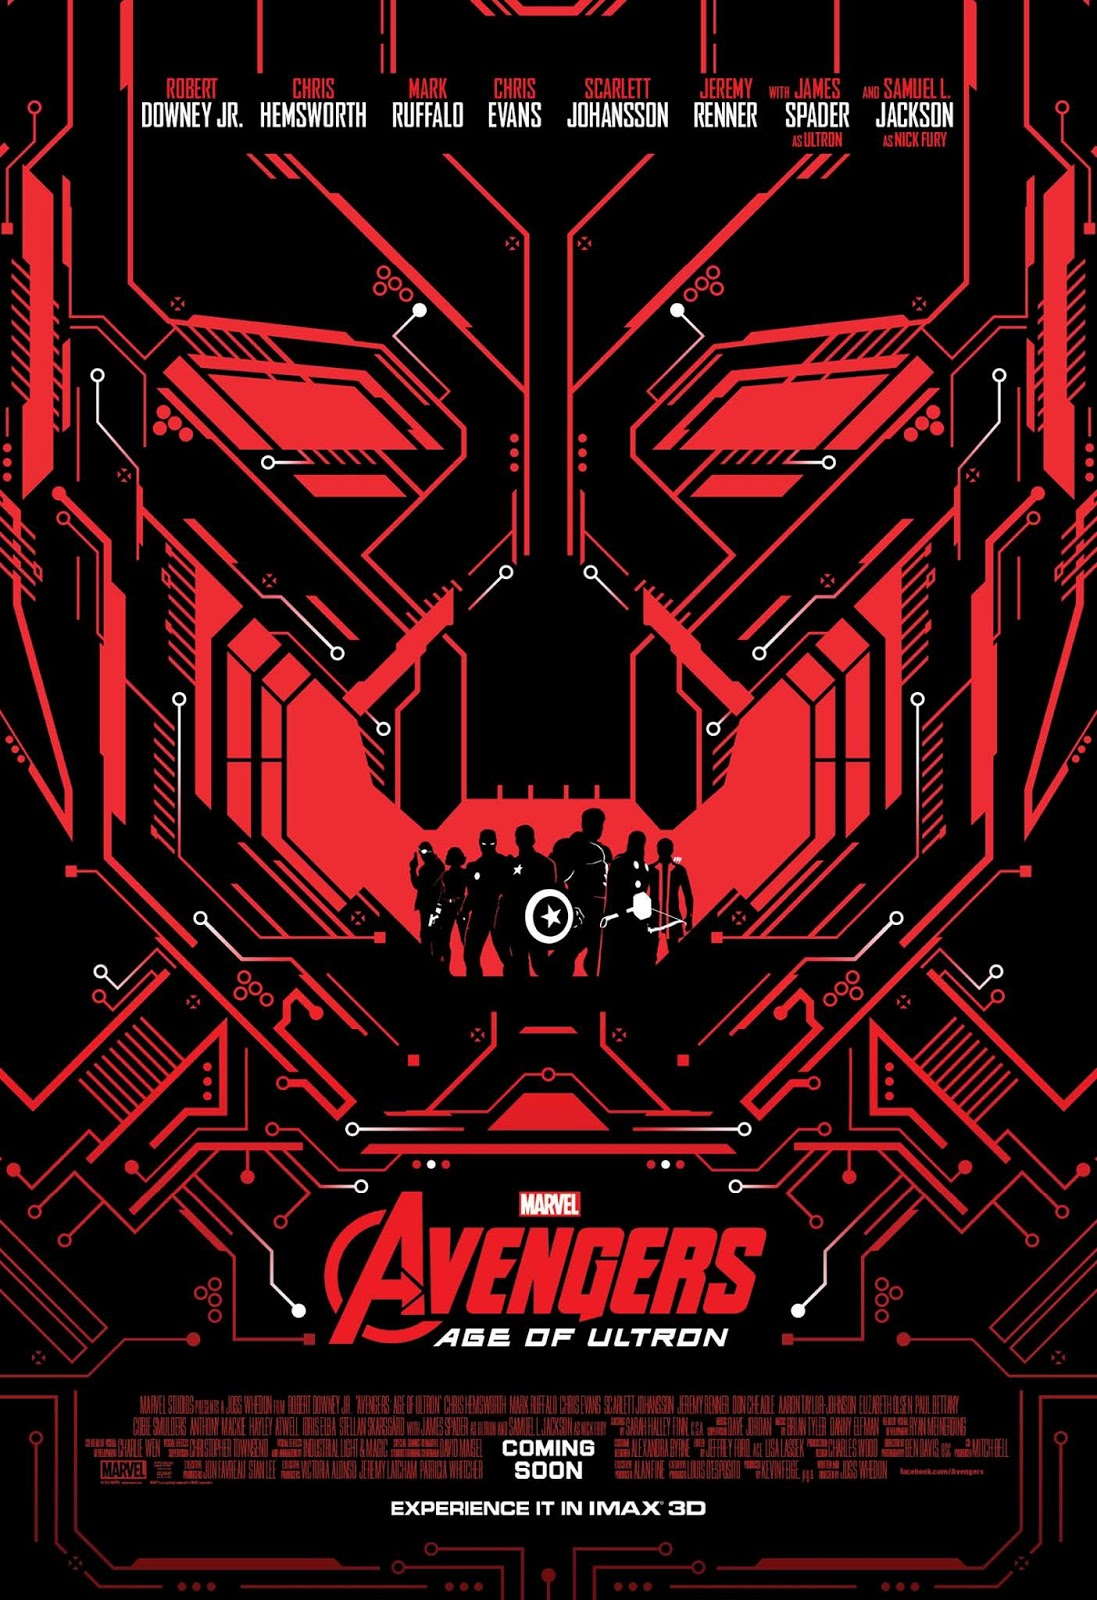 Avengers: Age of Ultron - Final Trailer & IMAX Posters